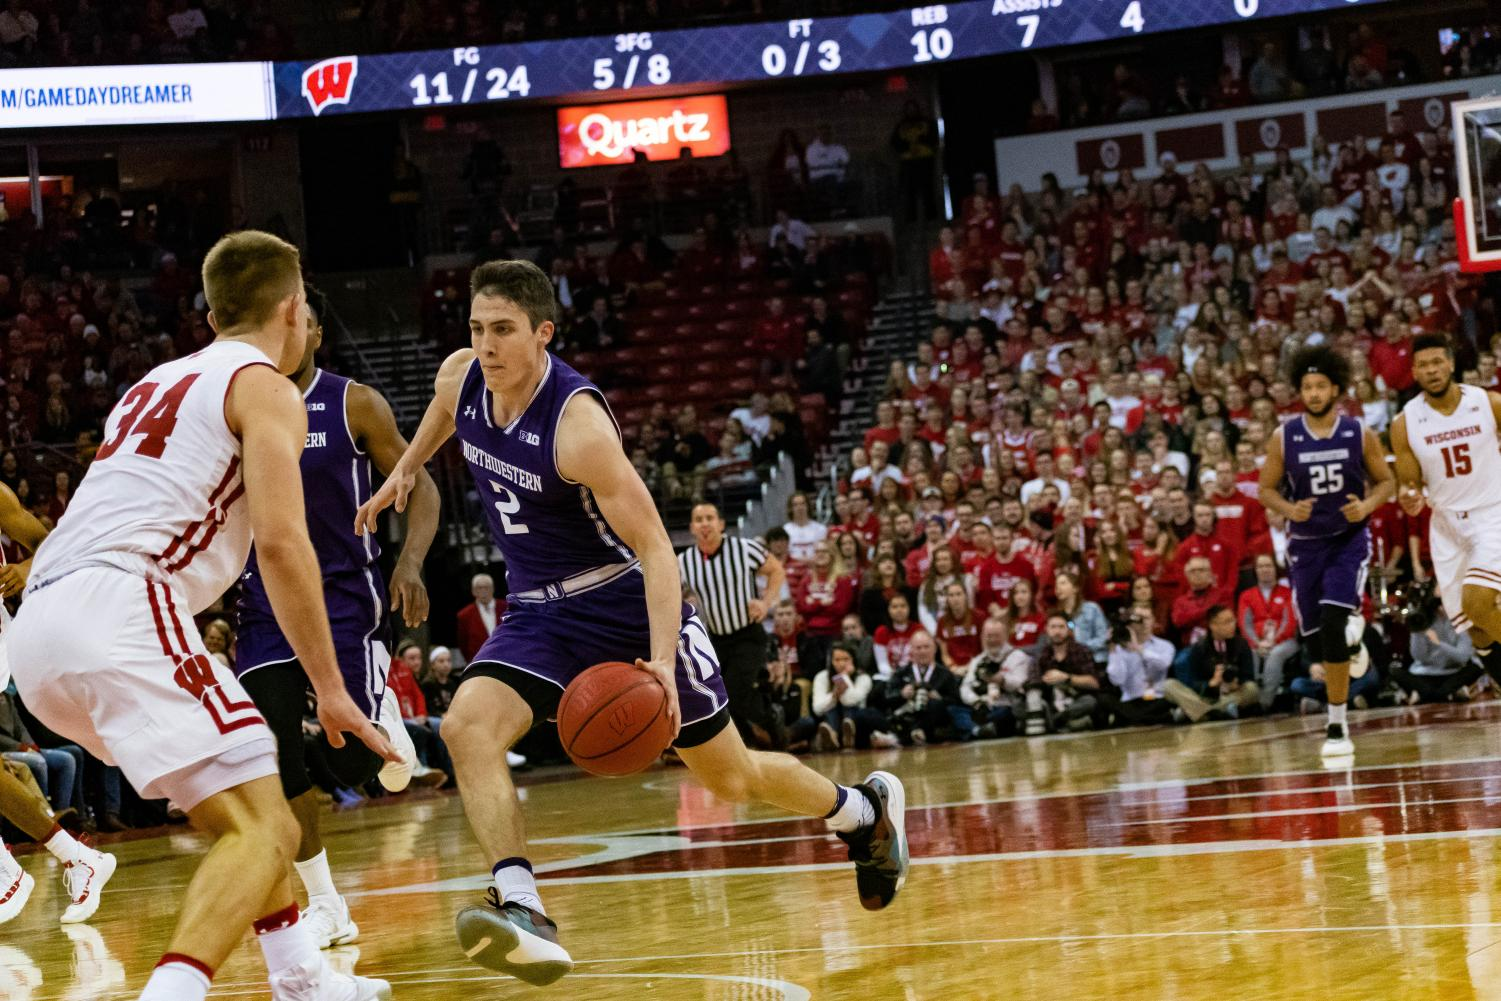 Ryan Greer dribbles the ball. The freshman guard scored six points in the first half on Saturday.